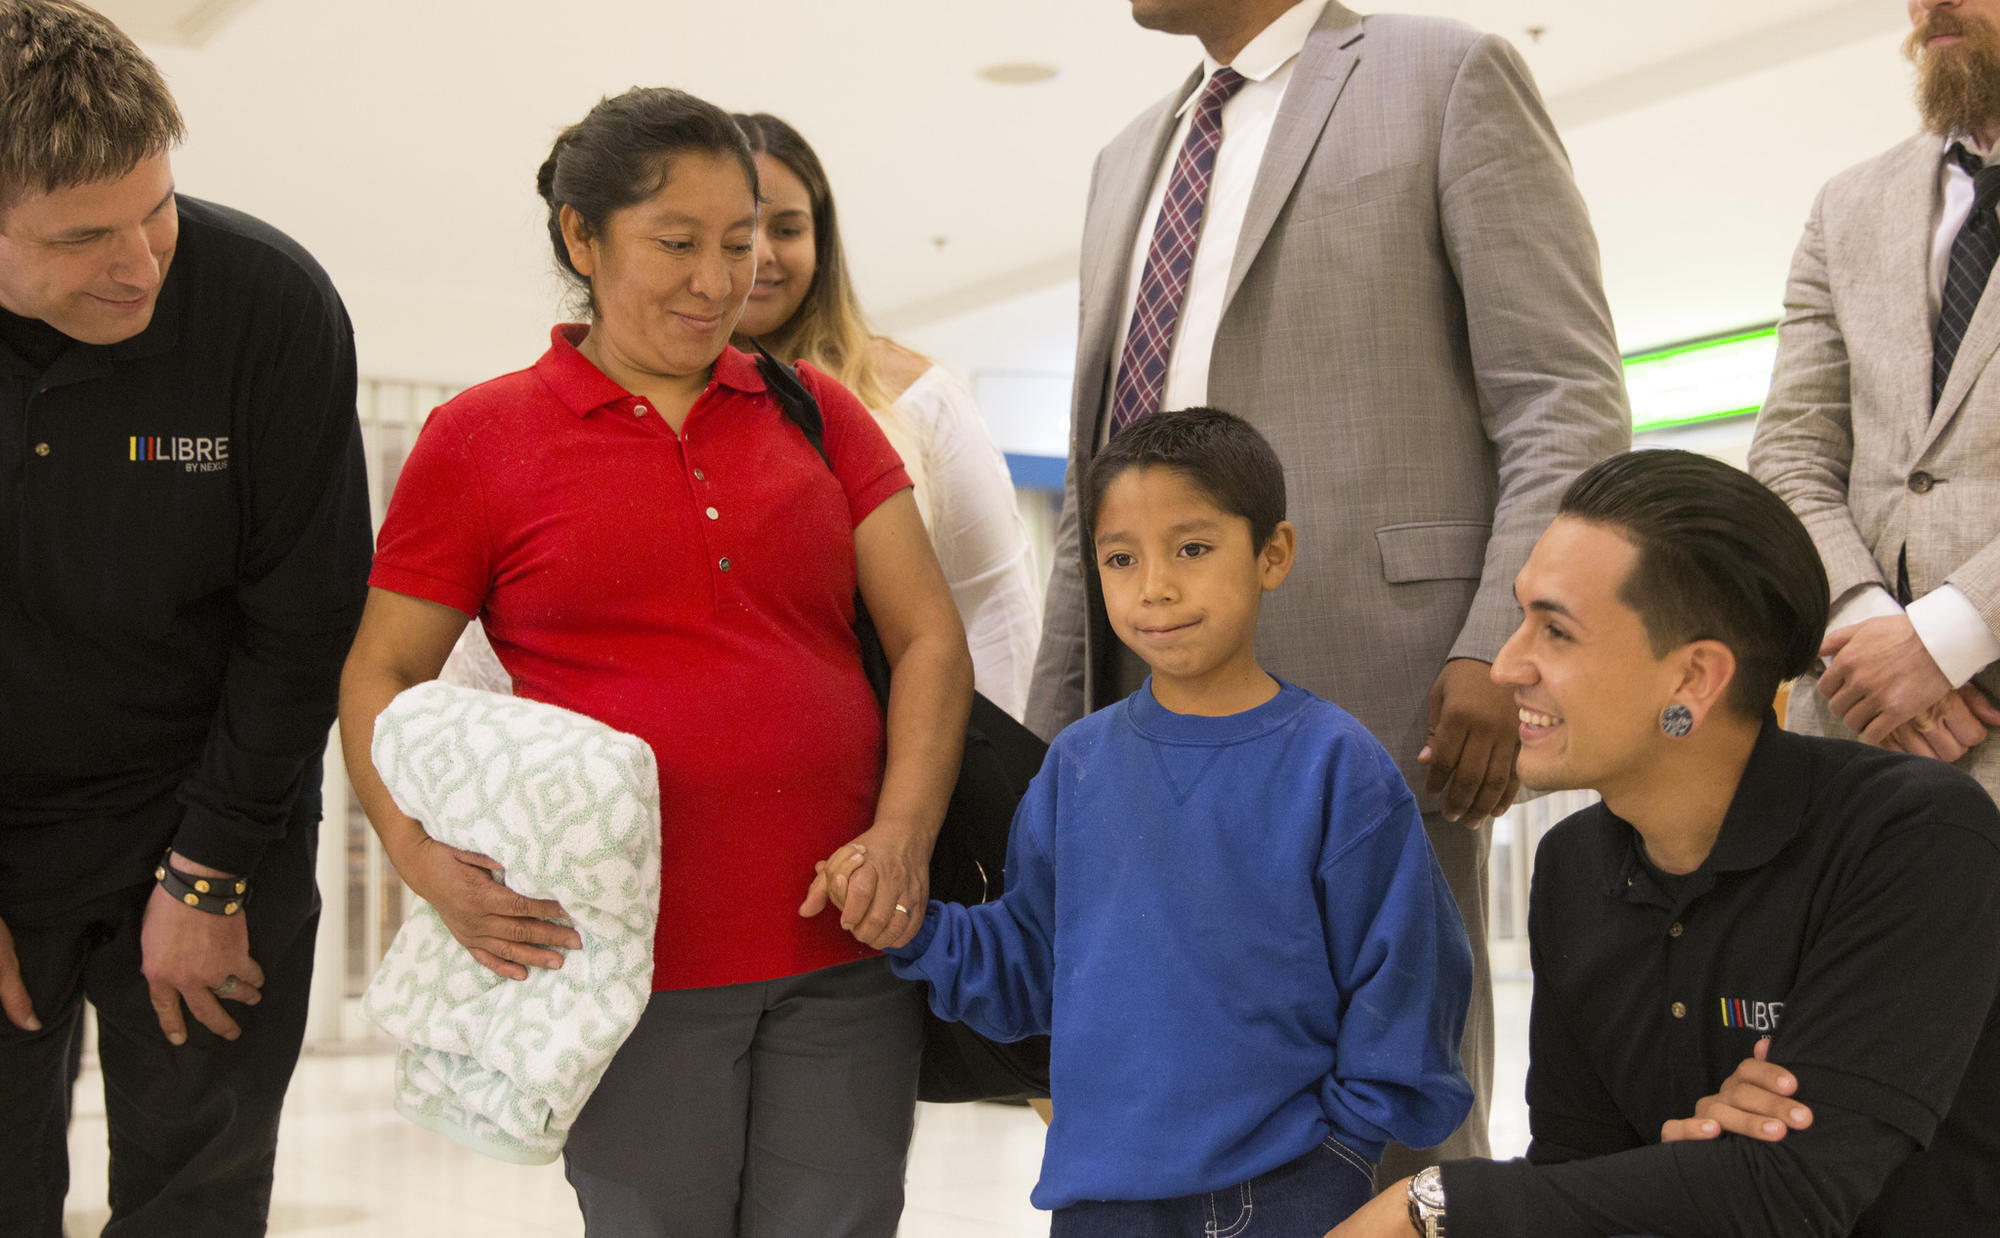 guatemalan woman reunited with her son at baltimore airport after